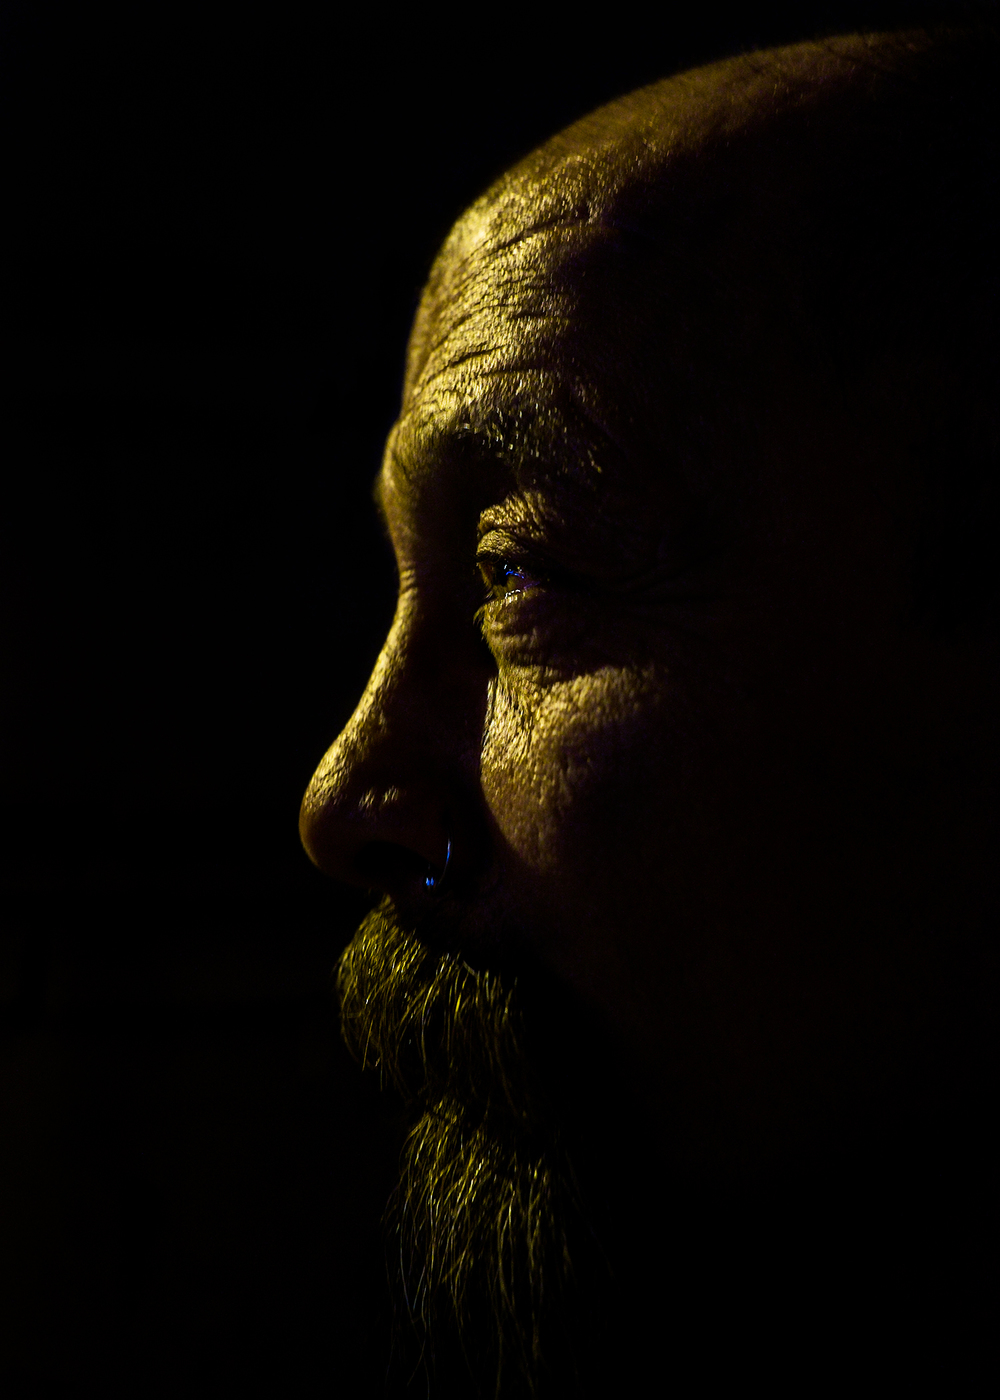 portrait-night-profile-turk-istanbul-matthew-coleman-photography